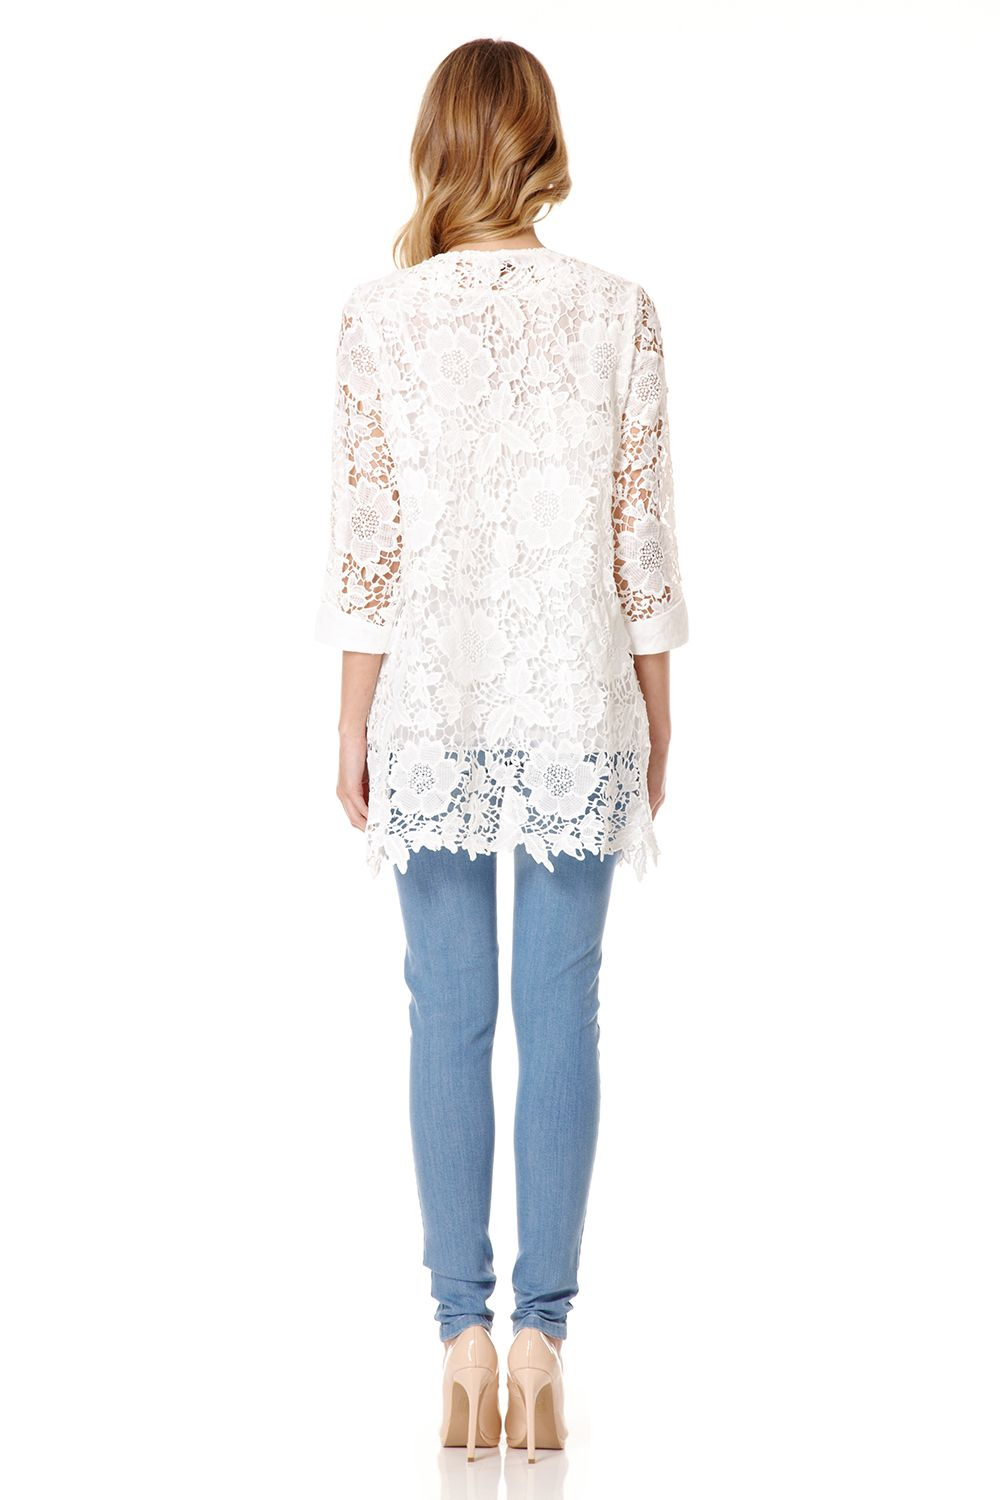 Quiz White Lace 34 Sleeve Jacket For Men - Lyst-3900